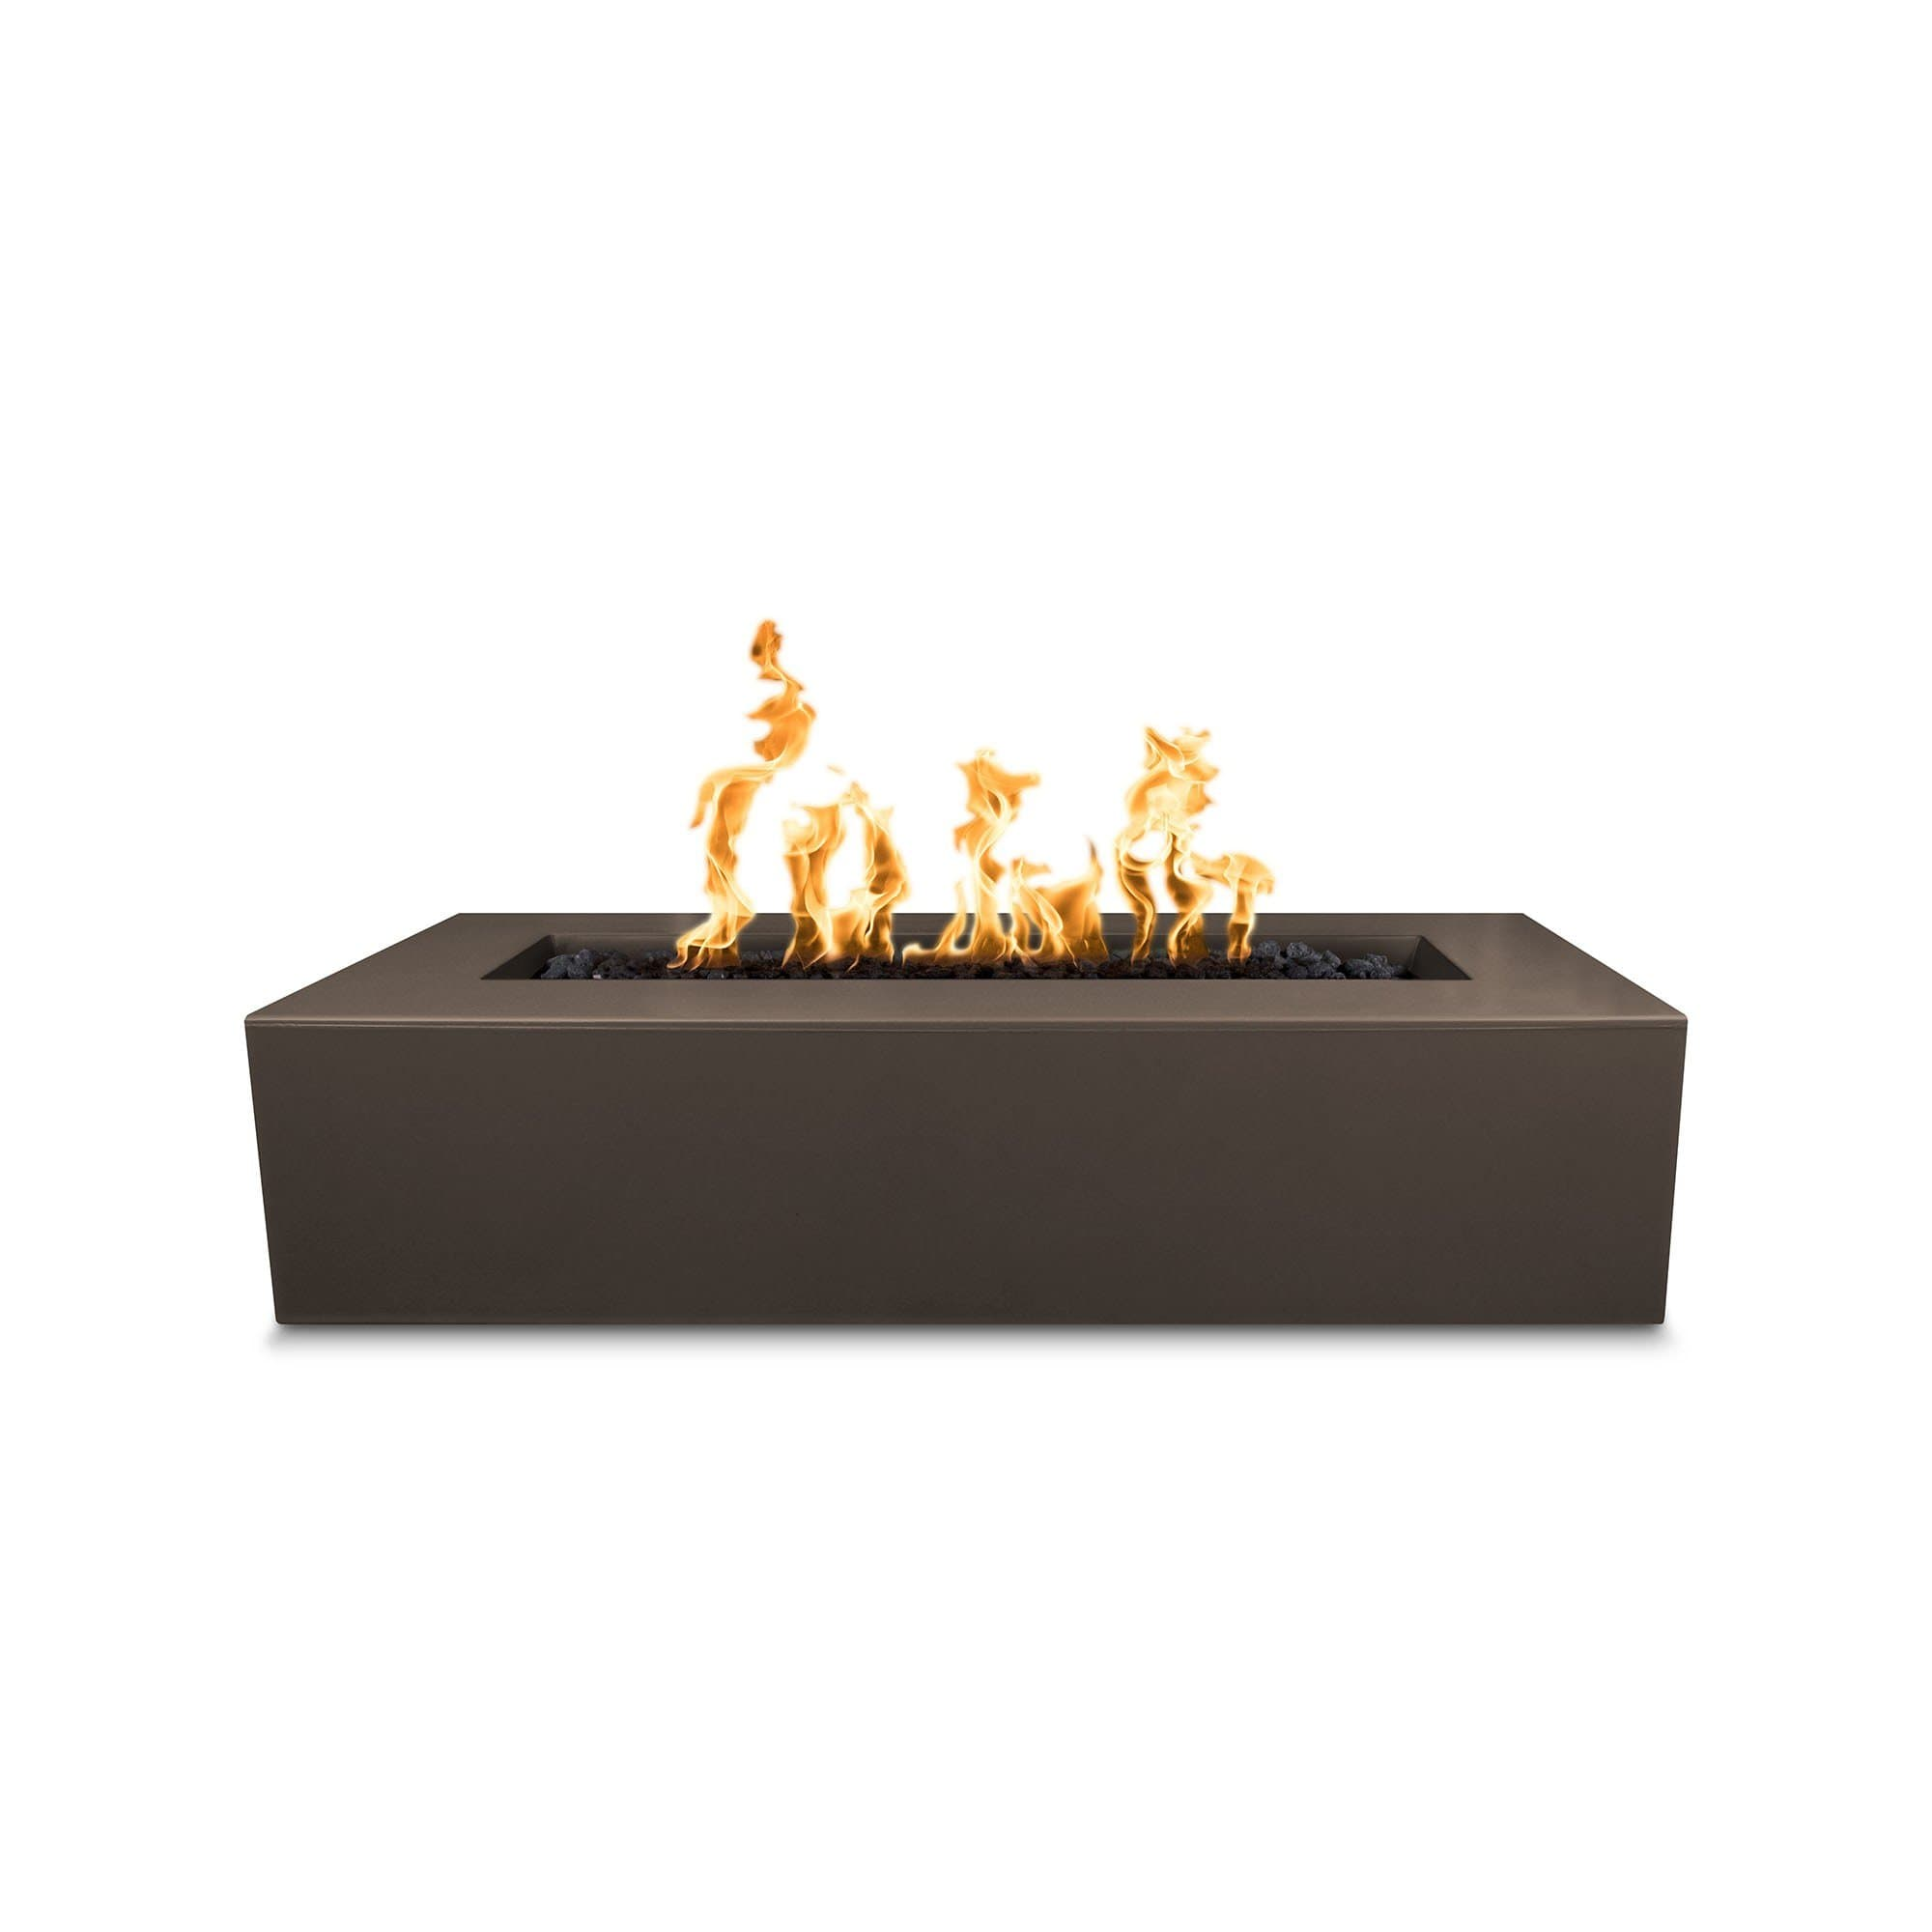 "The Outdoor Plus Regal 54"" Concrete Fire Pit OPT-RGL54 Fire Pit The Outdoor Plus Chocolate Electronic Ignition Natural Gas"